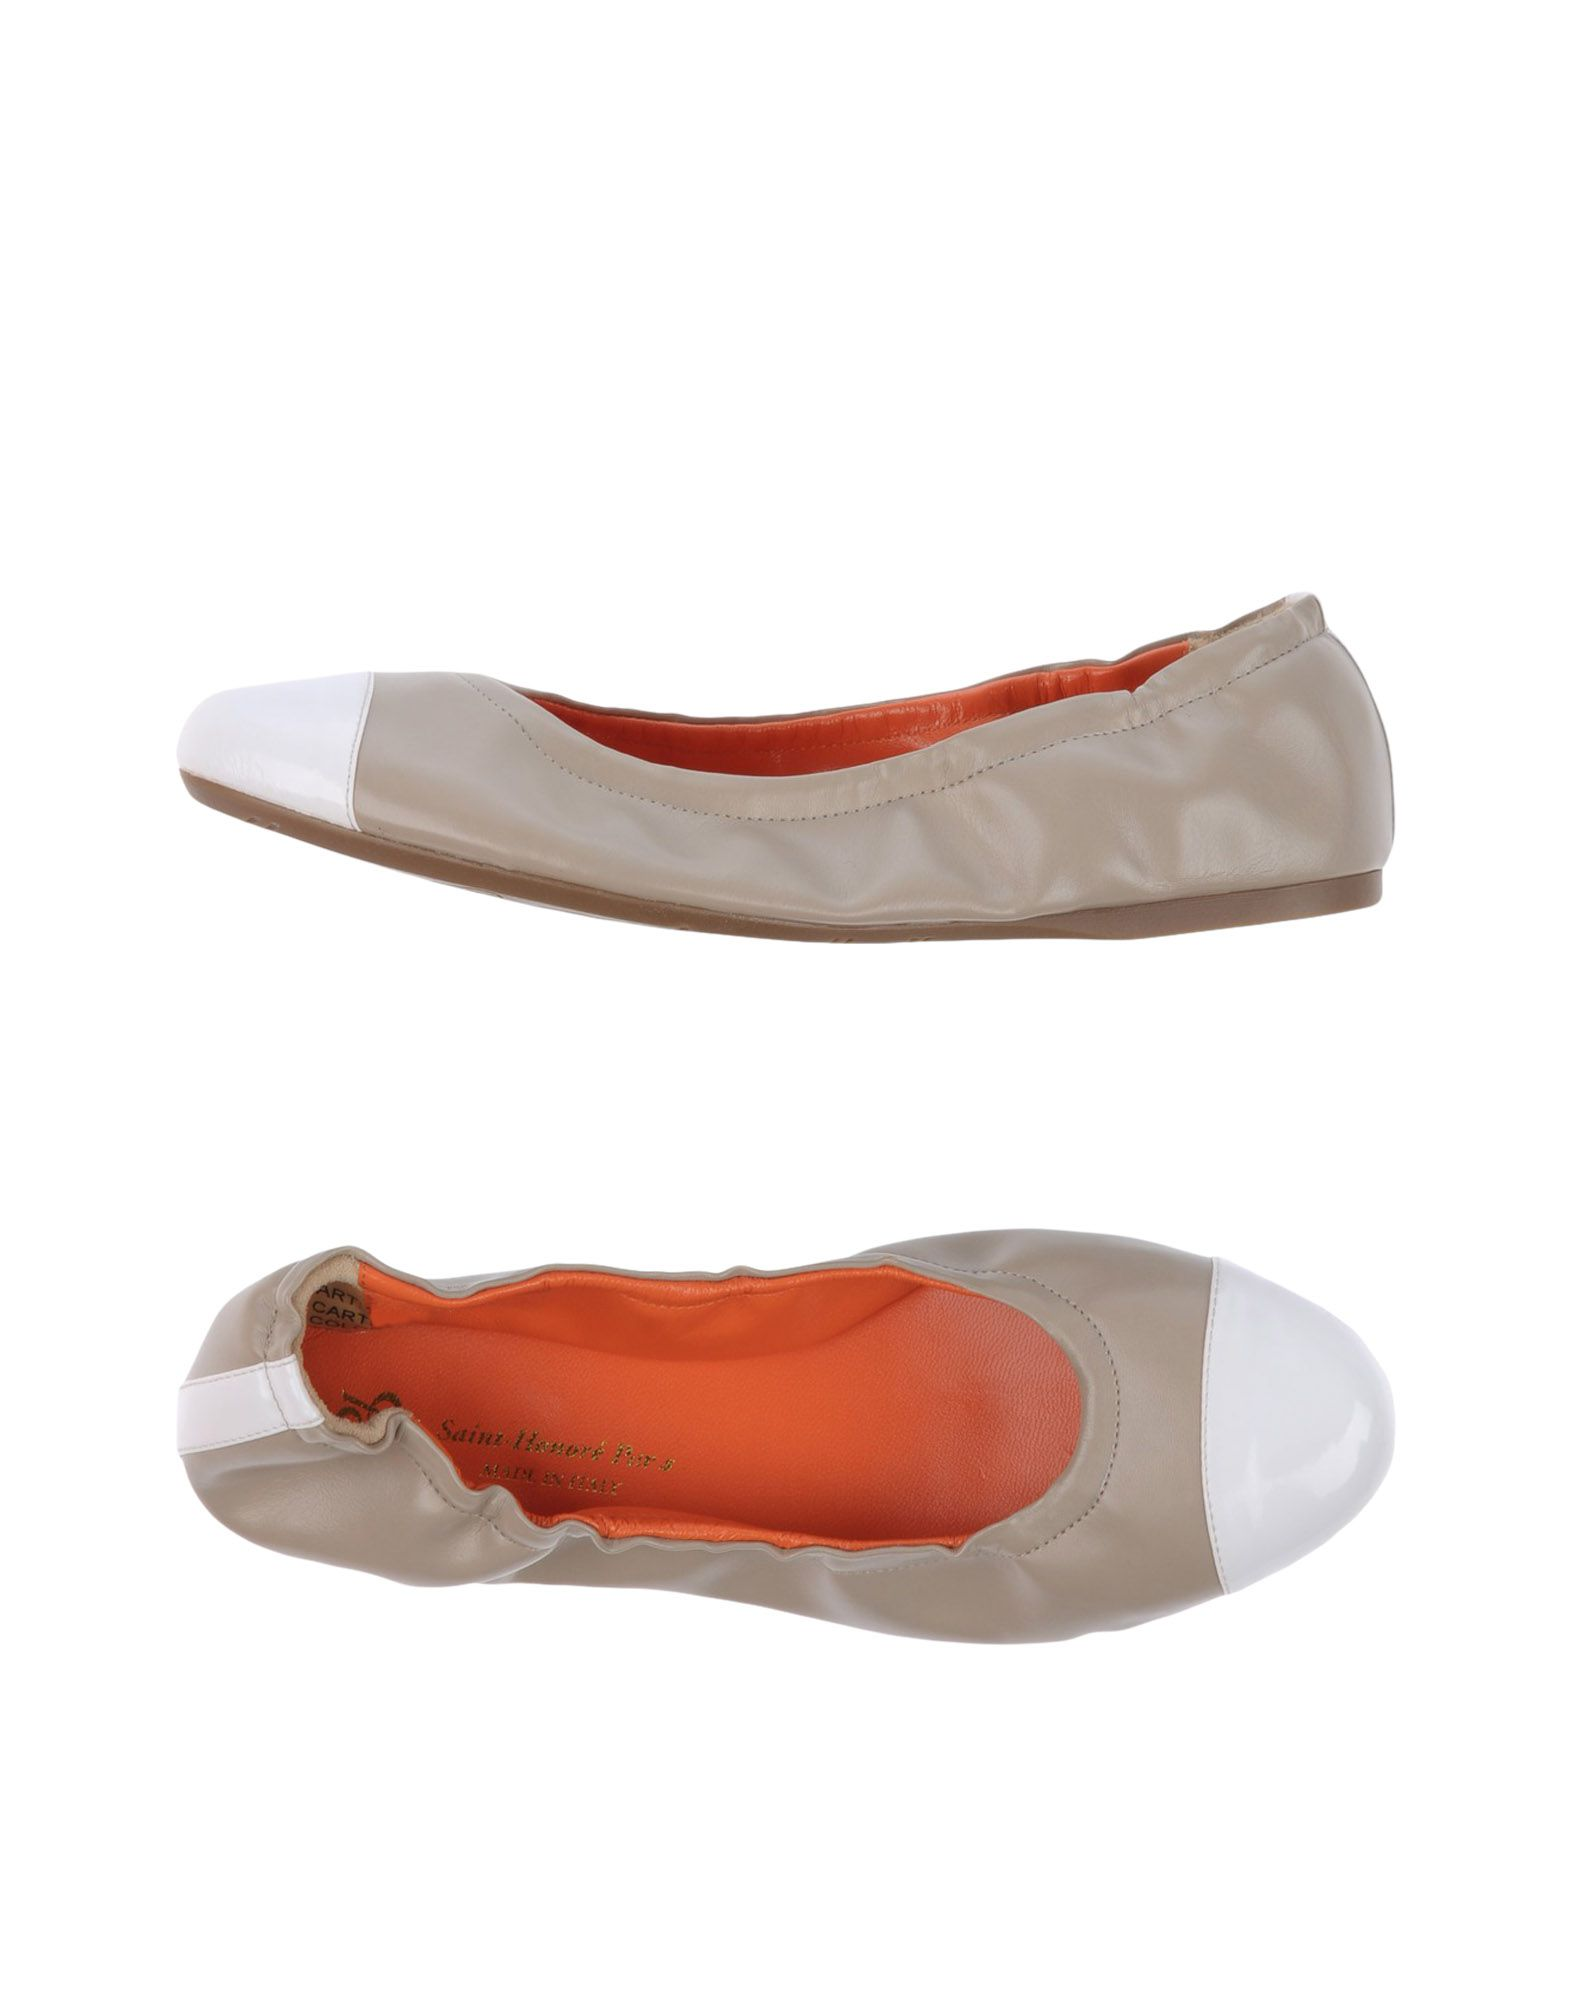 Saint-Honoré Paris Souliers Ballet Flats - Women Saint-Honoré Paris on Souliers Ballet Flats online on Paris  Canada - 11169528TA 683e32